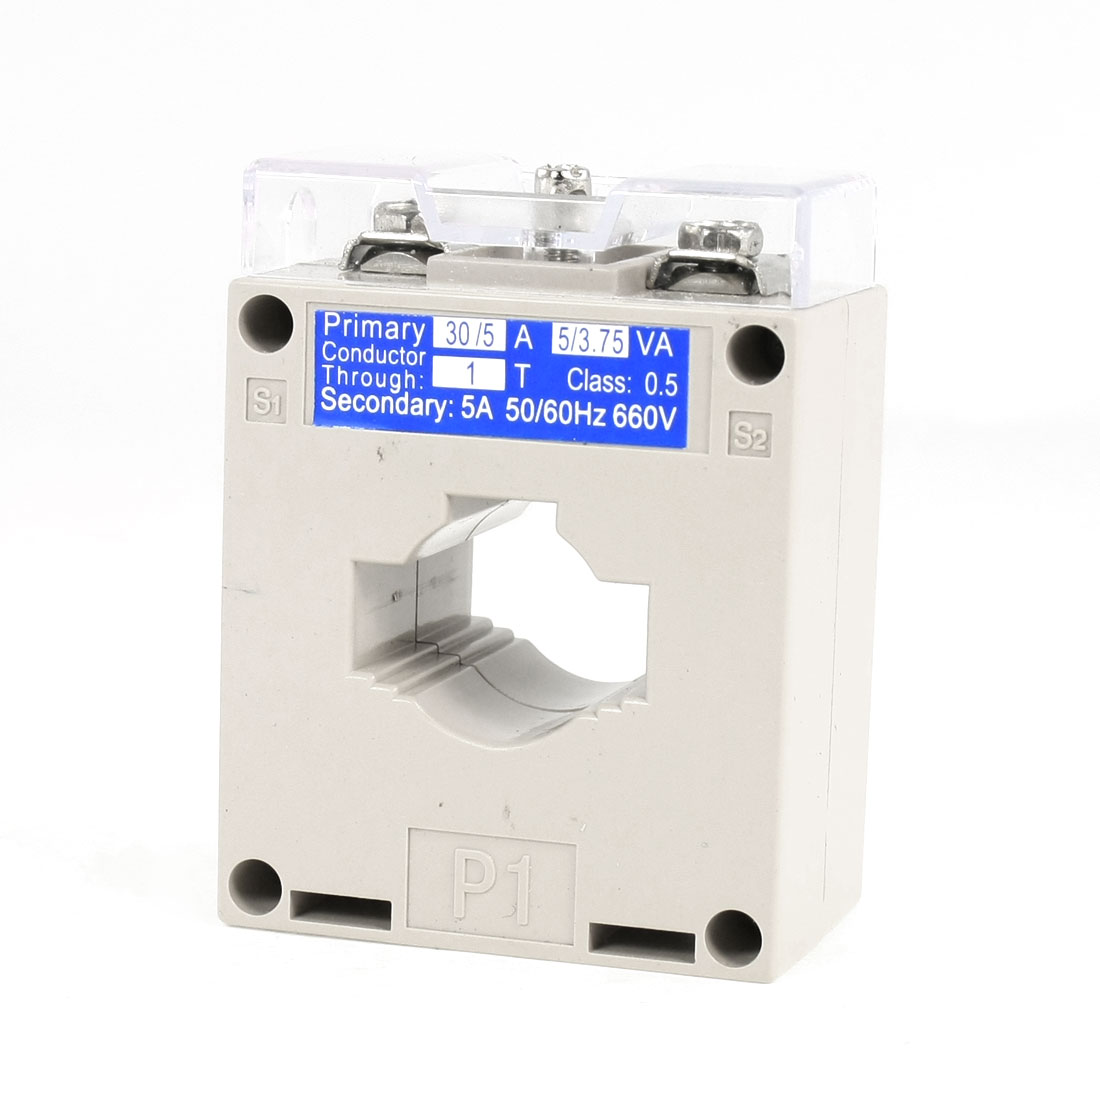 0.66KV 50/60Hz 0.5 Accuracy 30/5 Current Transformer BH-0.66CT